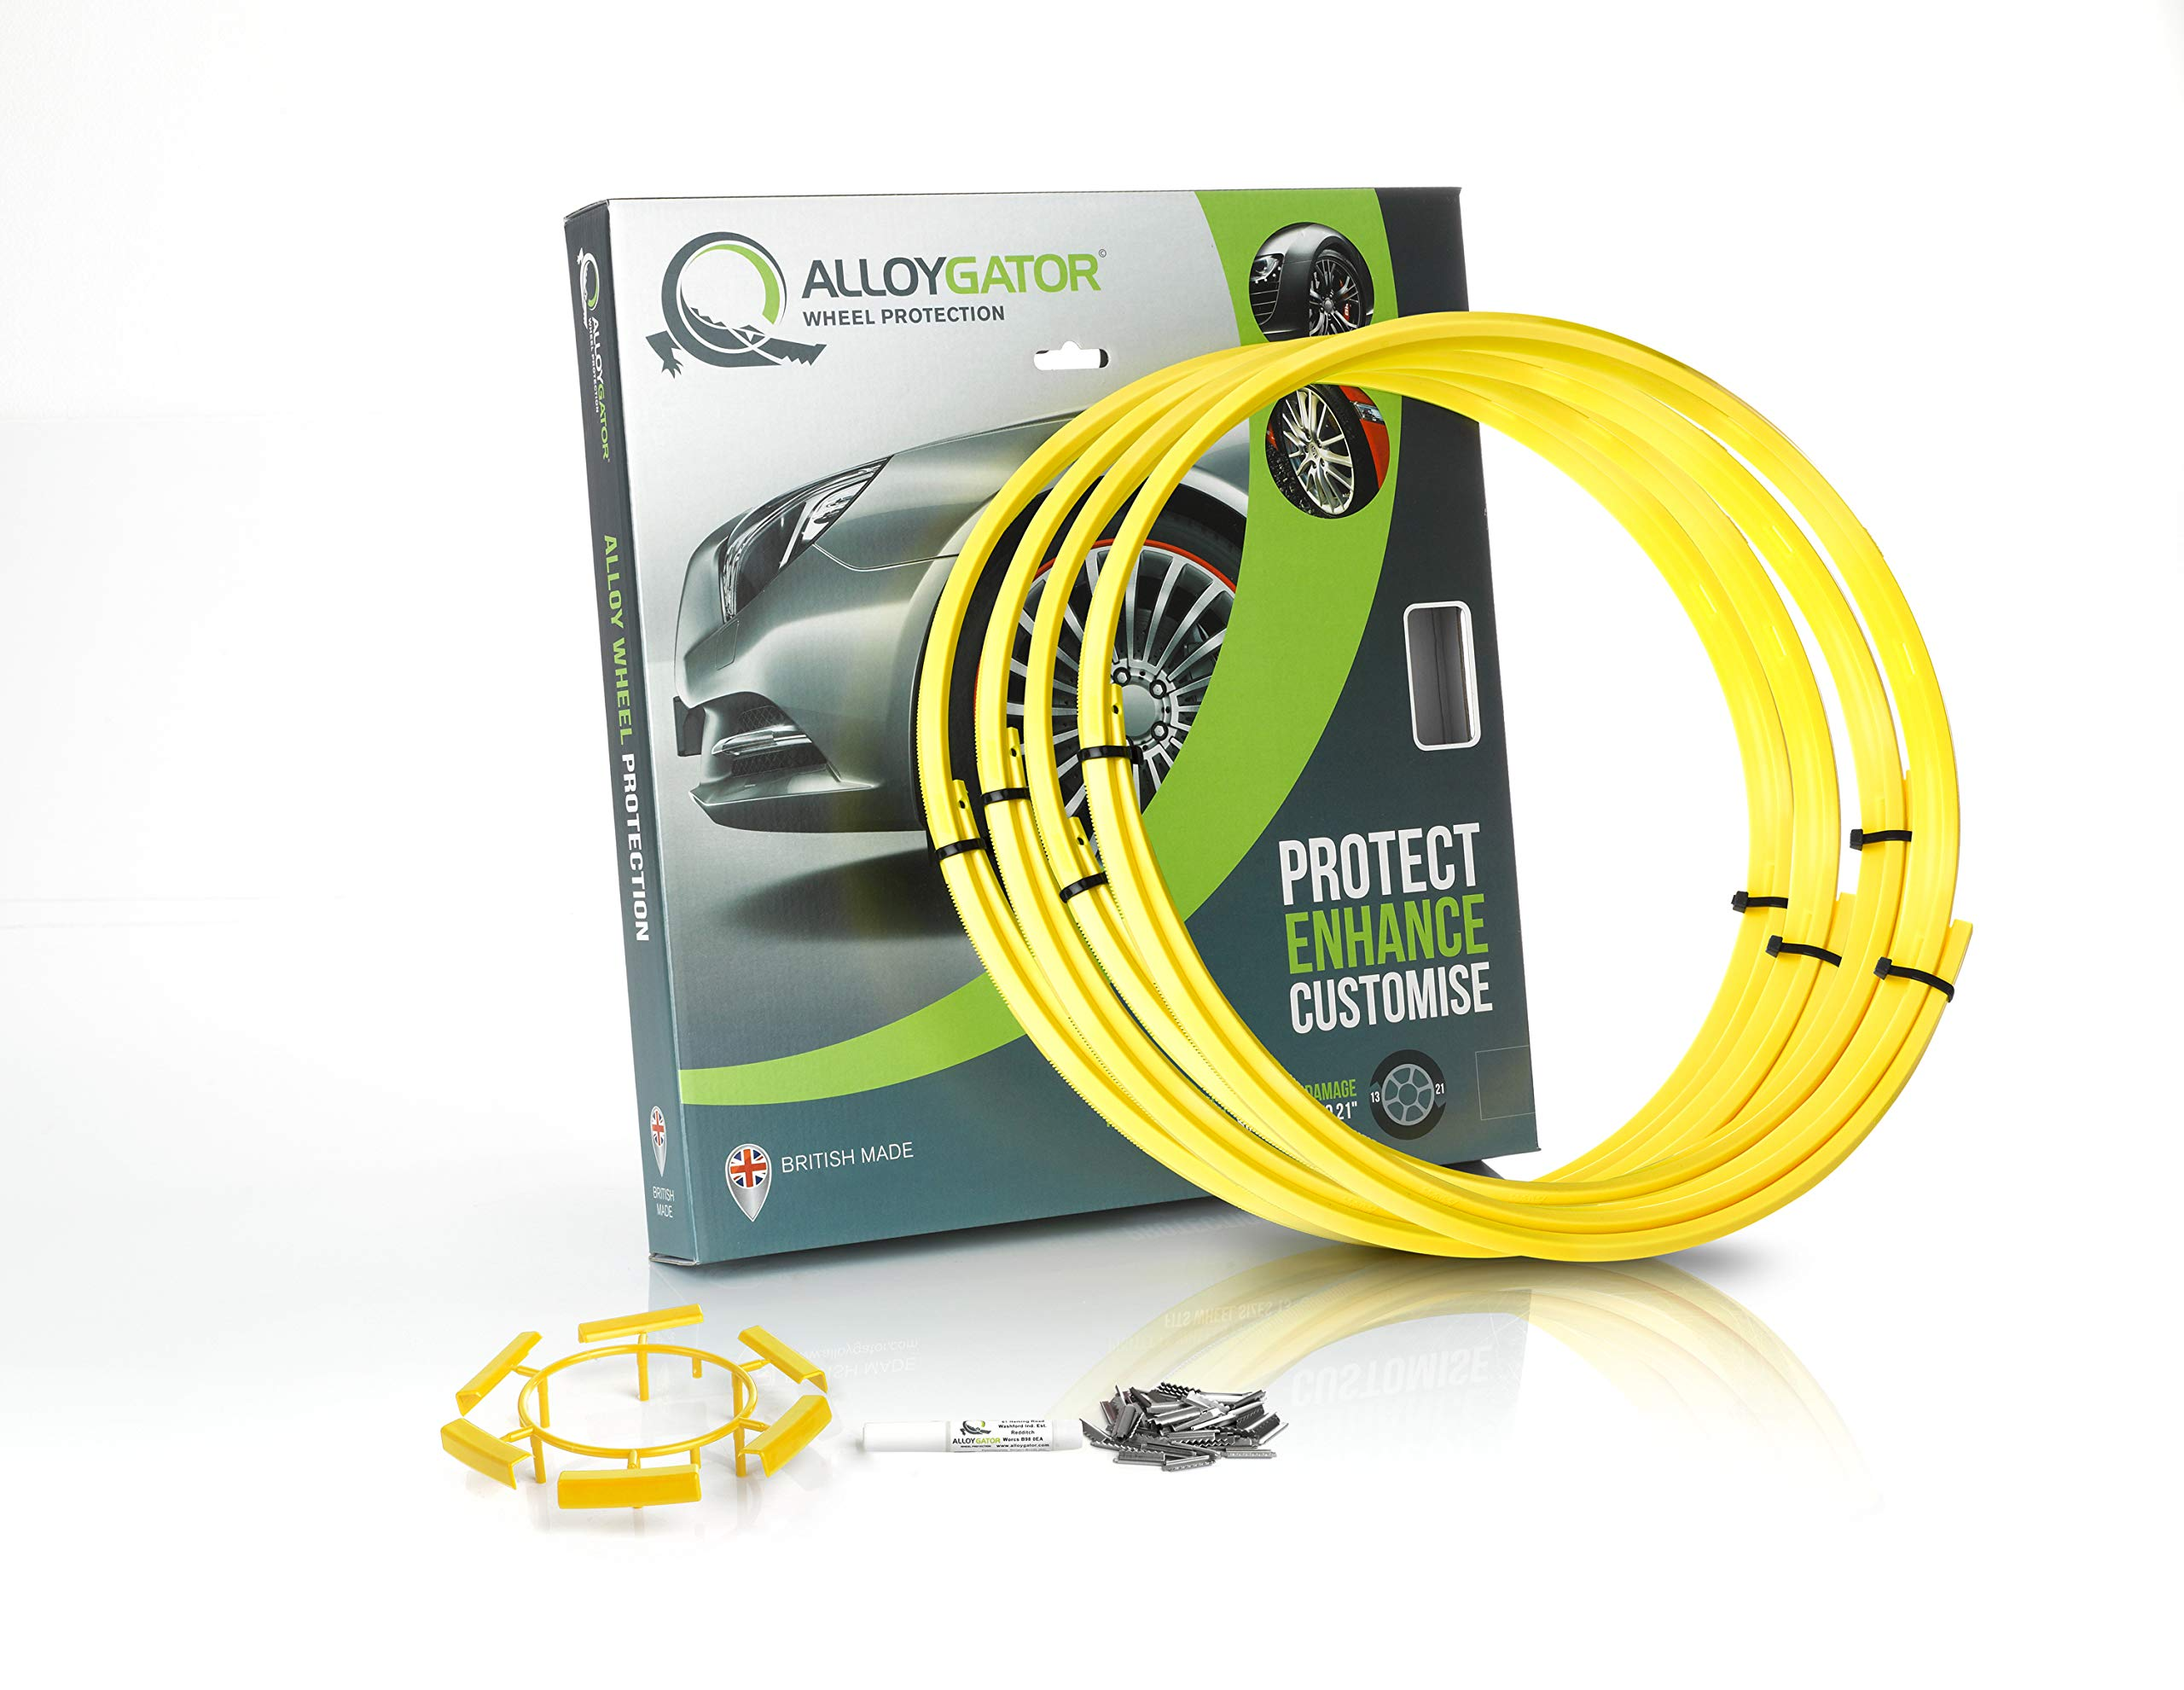 Alloygator Alloy Wheel Protection (Made in Britain) Rim Protector Complete Set of 4 Yellow Color Excellent Fitment (FITS 13'' to 21'' OEM Factory Rims & Aftermarket Wheels)